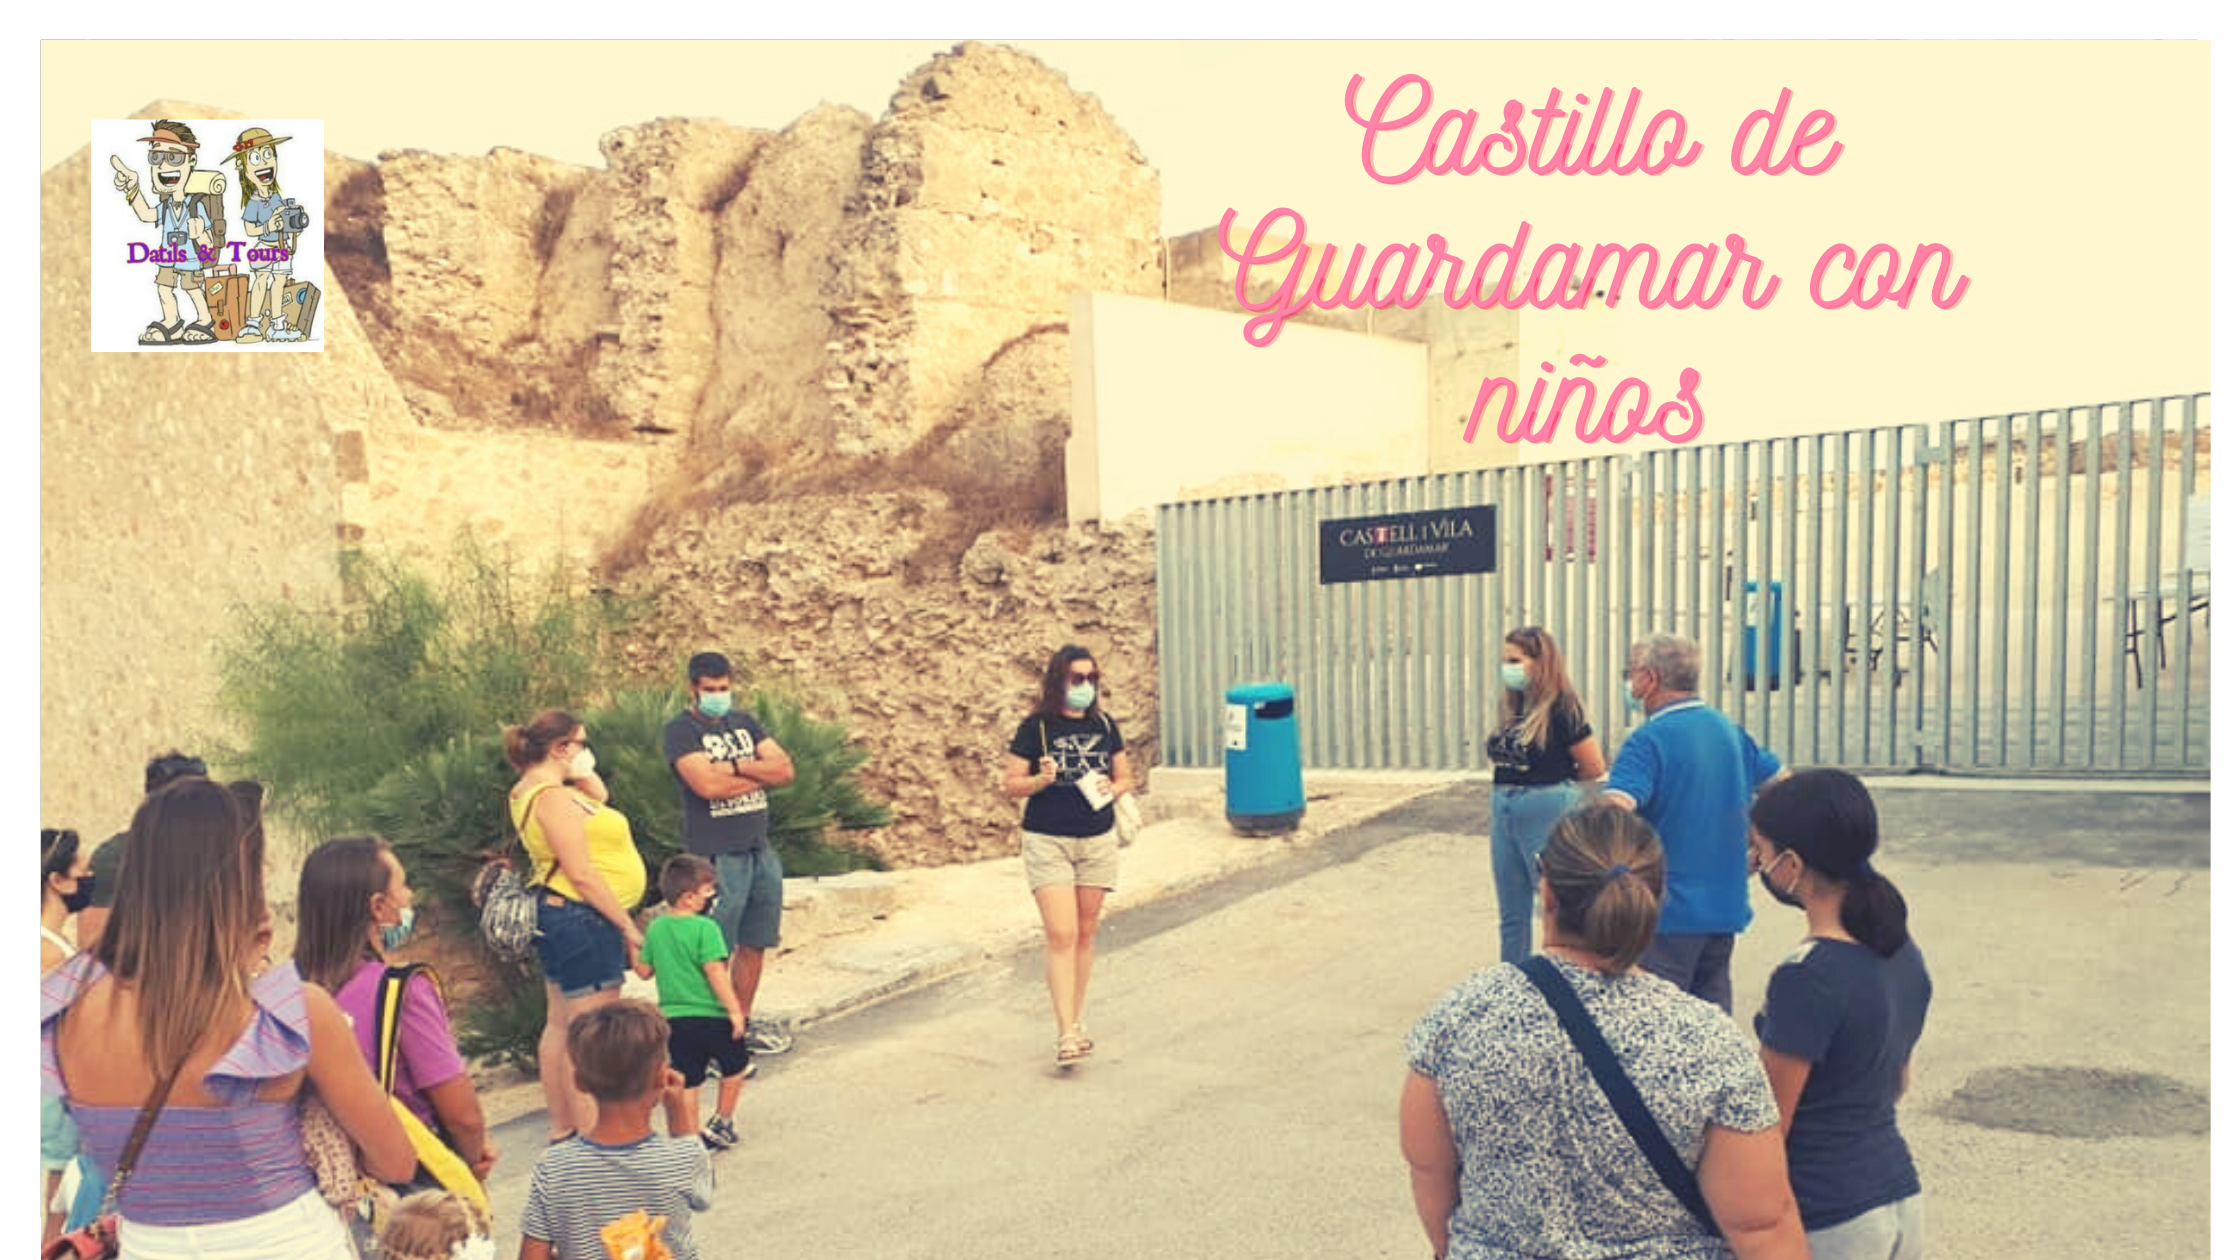 Castillo De Guardamar Del Segura Con Niños Datils Tours Travel Bloggers